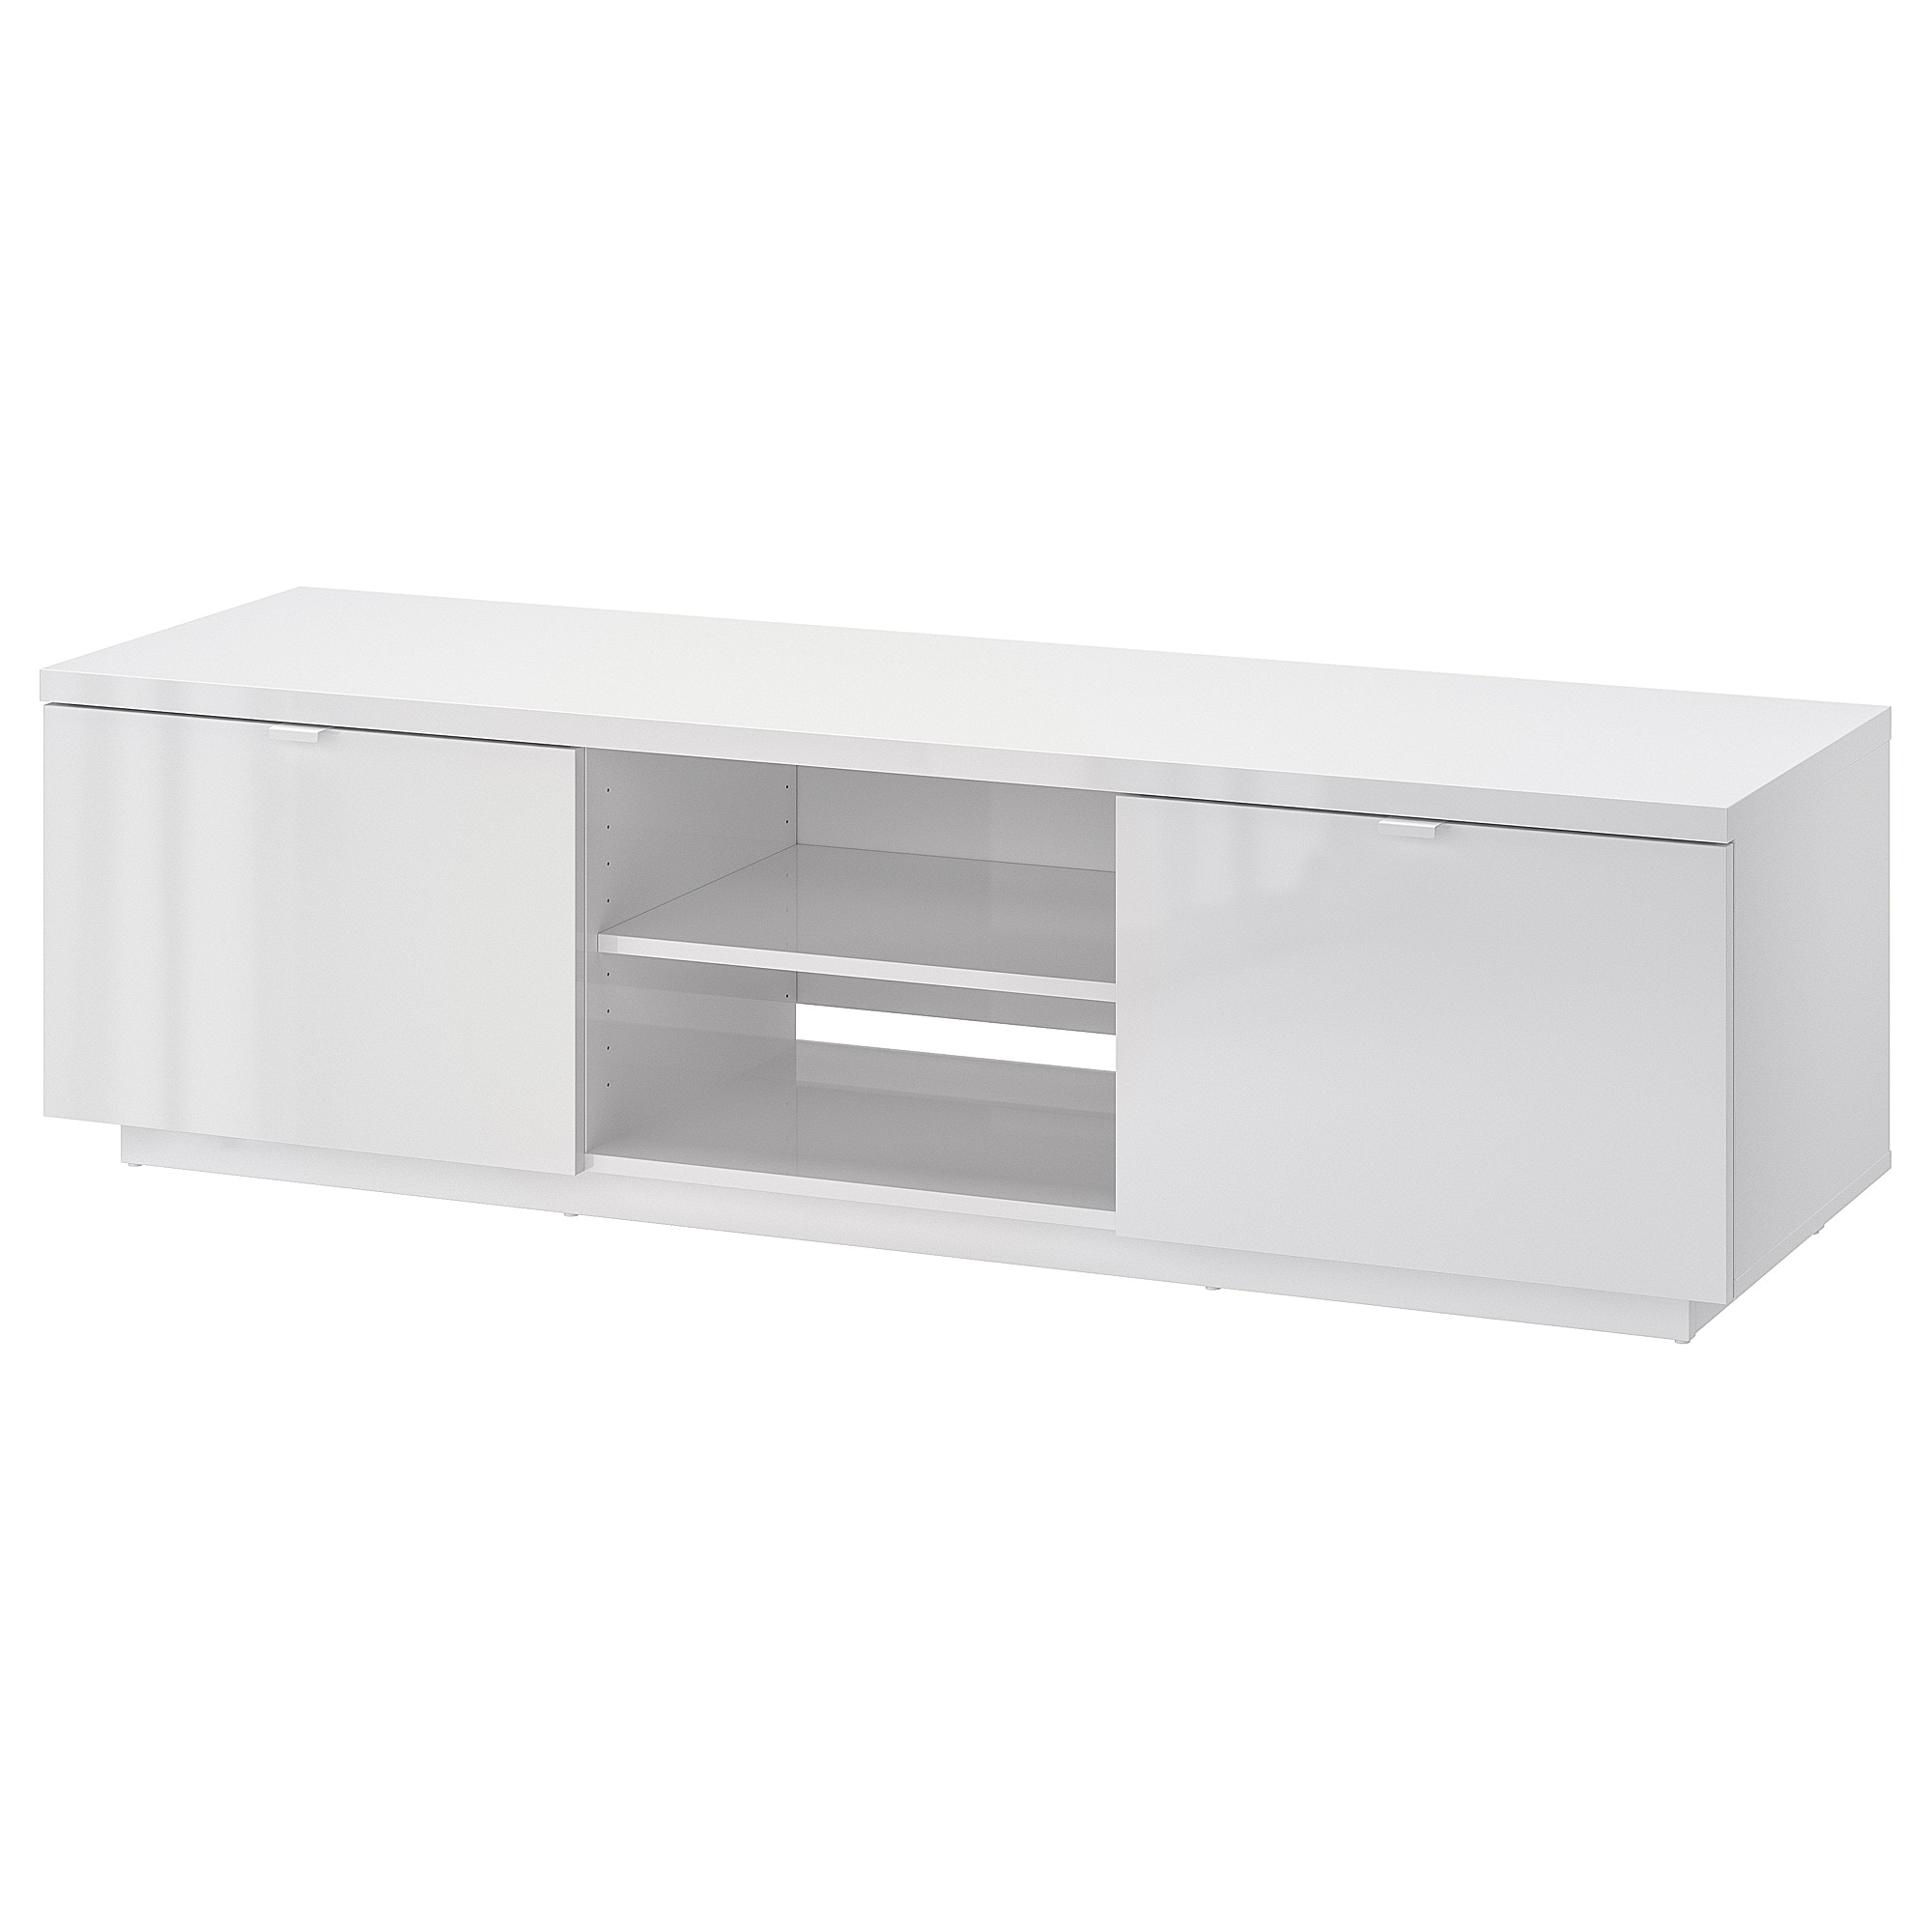 Tv Tables - Tv Benches | Ikea for Valencia 70 Inch Tv Stands (Image 15 of 30)